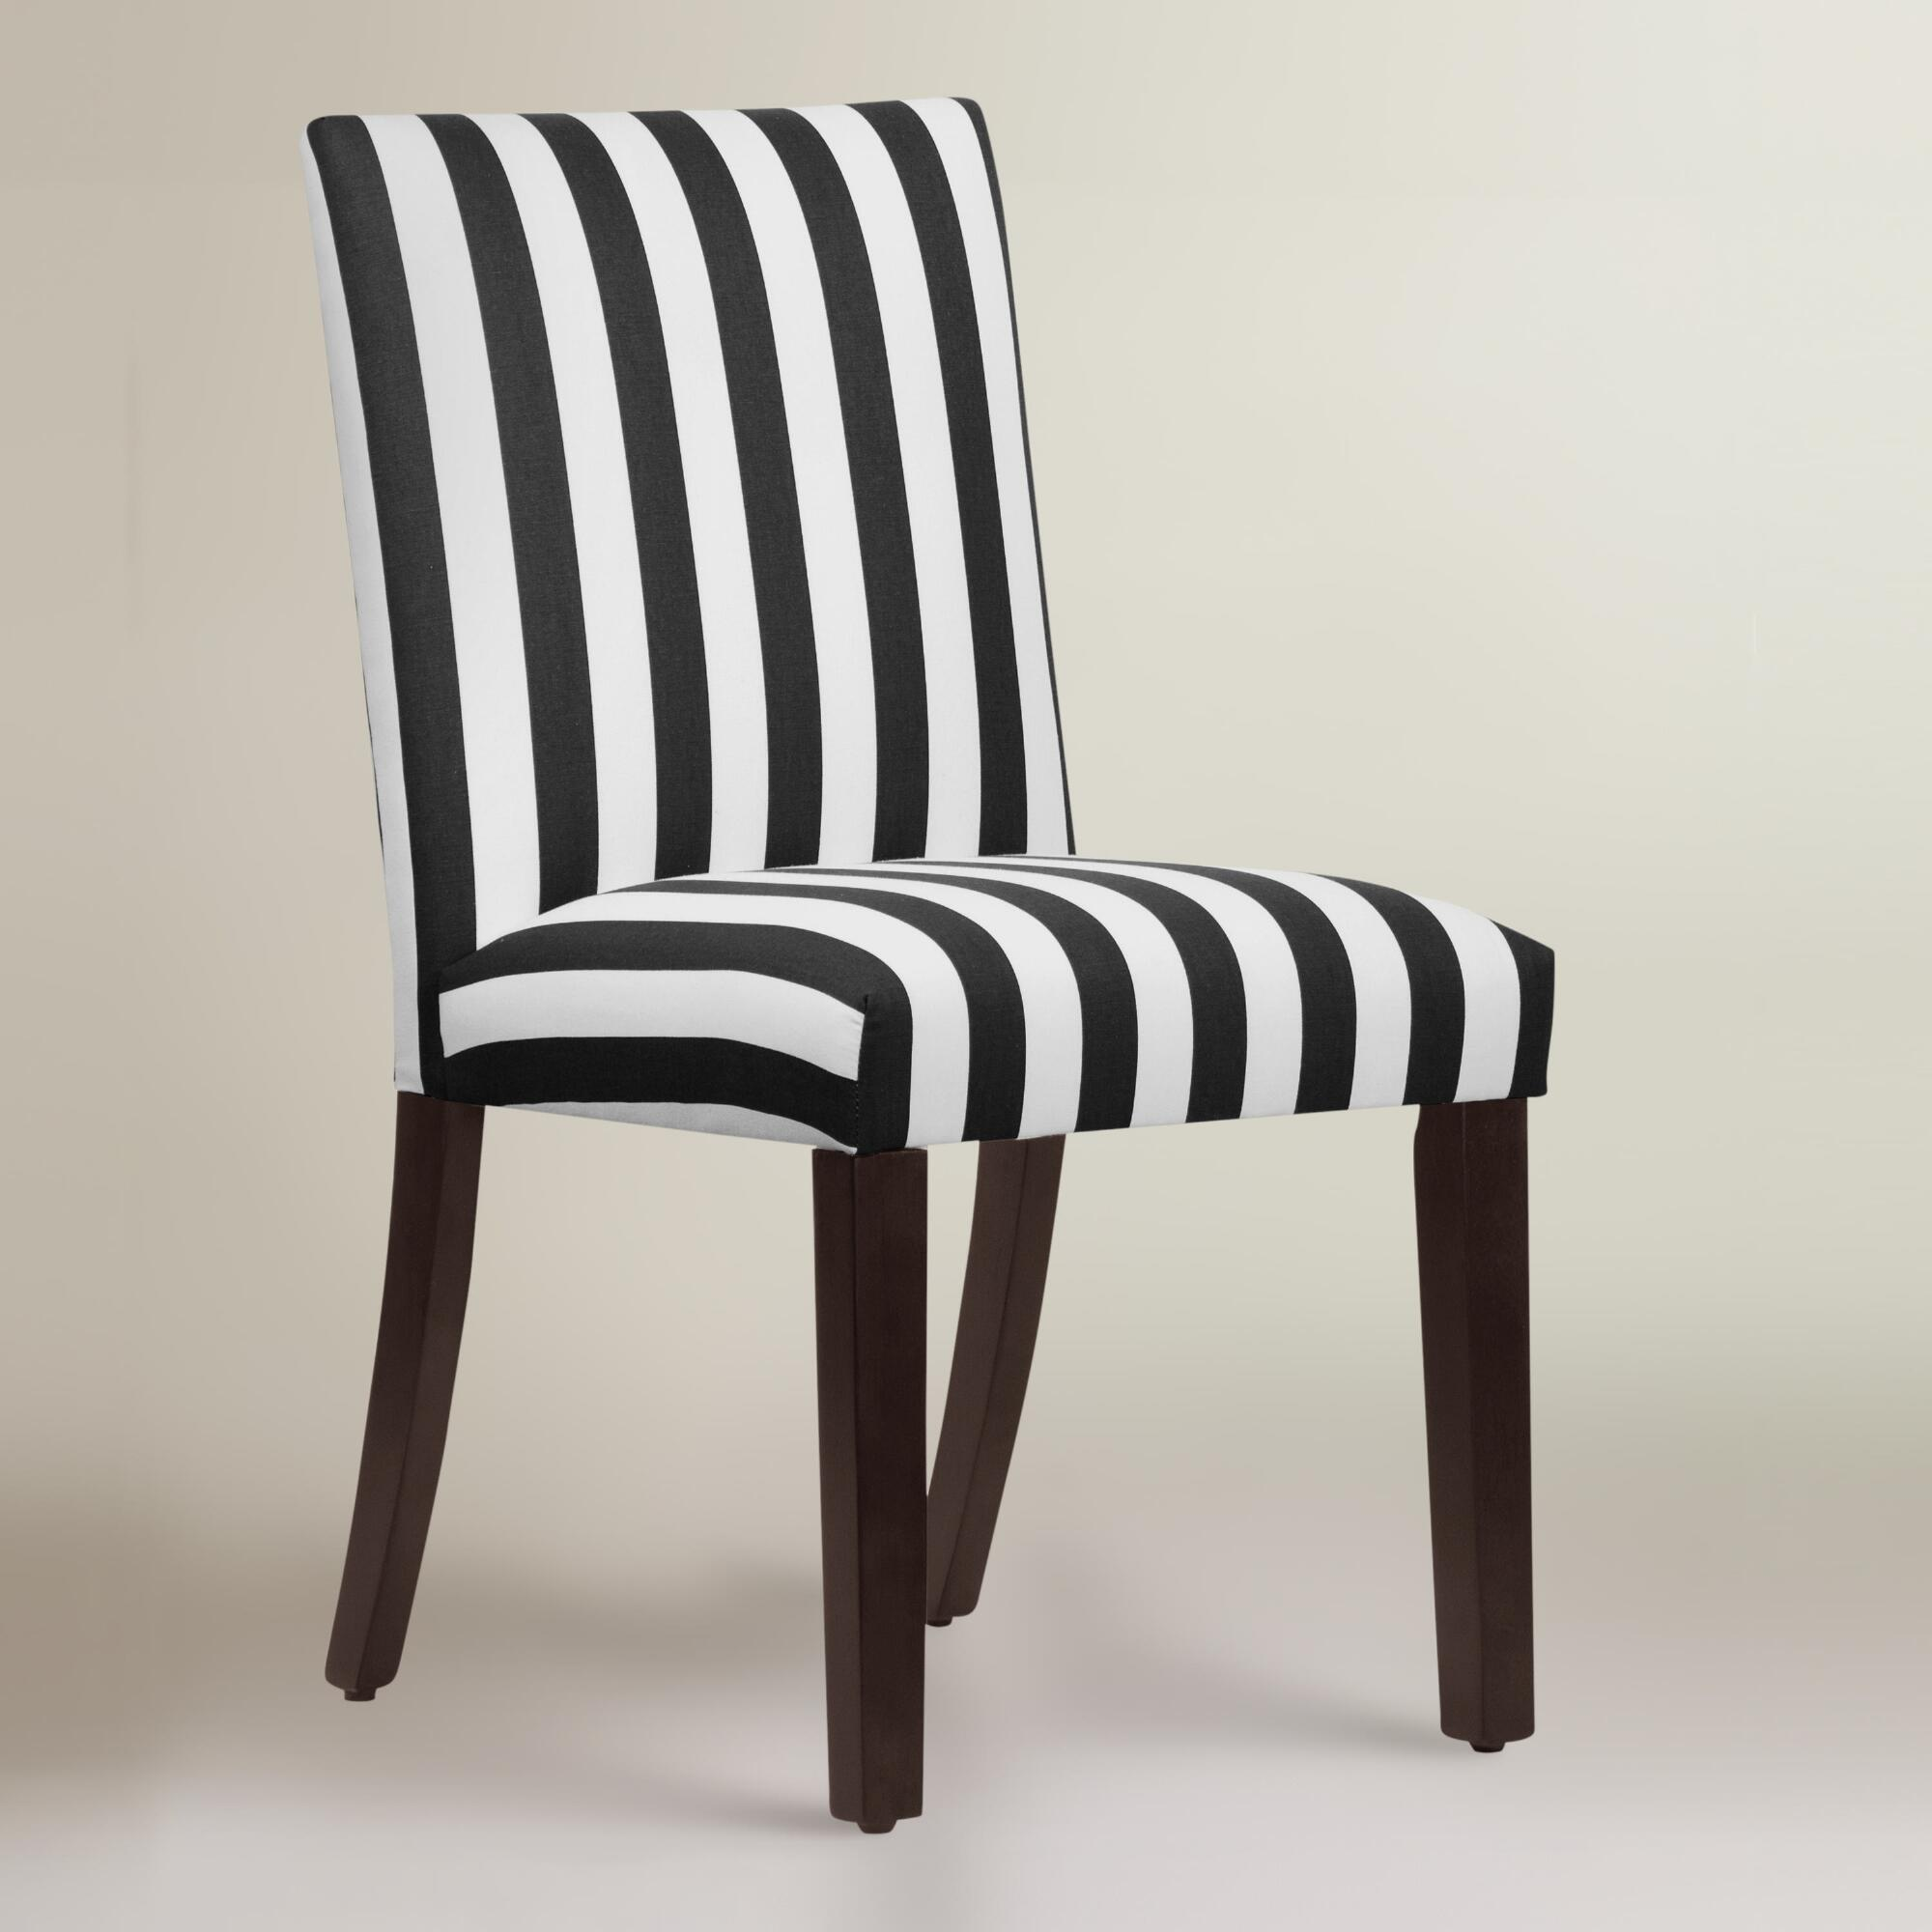 Striped Dining Room Chairs: Canopy Stripe Kerri Upholstered Dining Chair